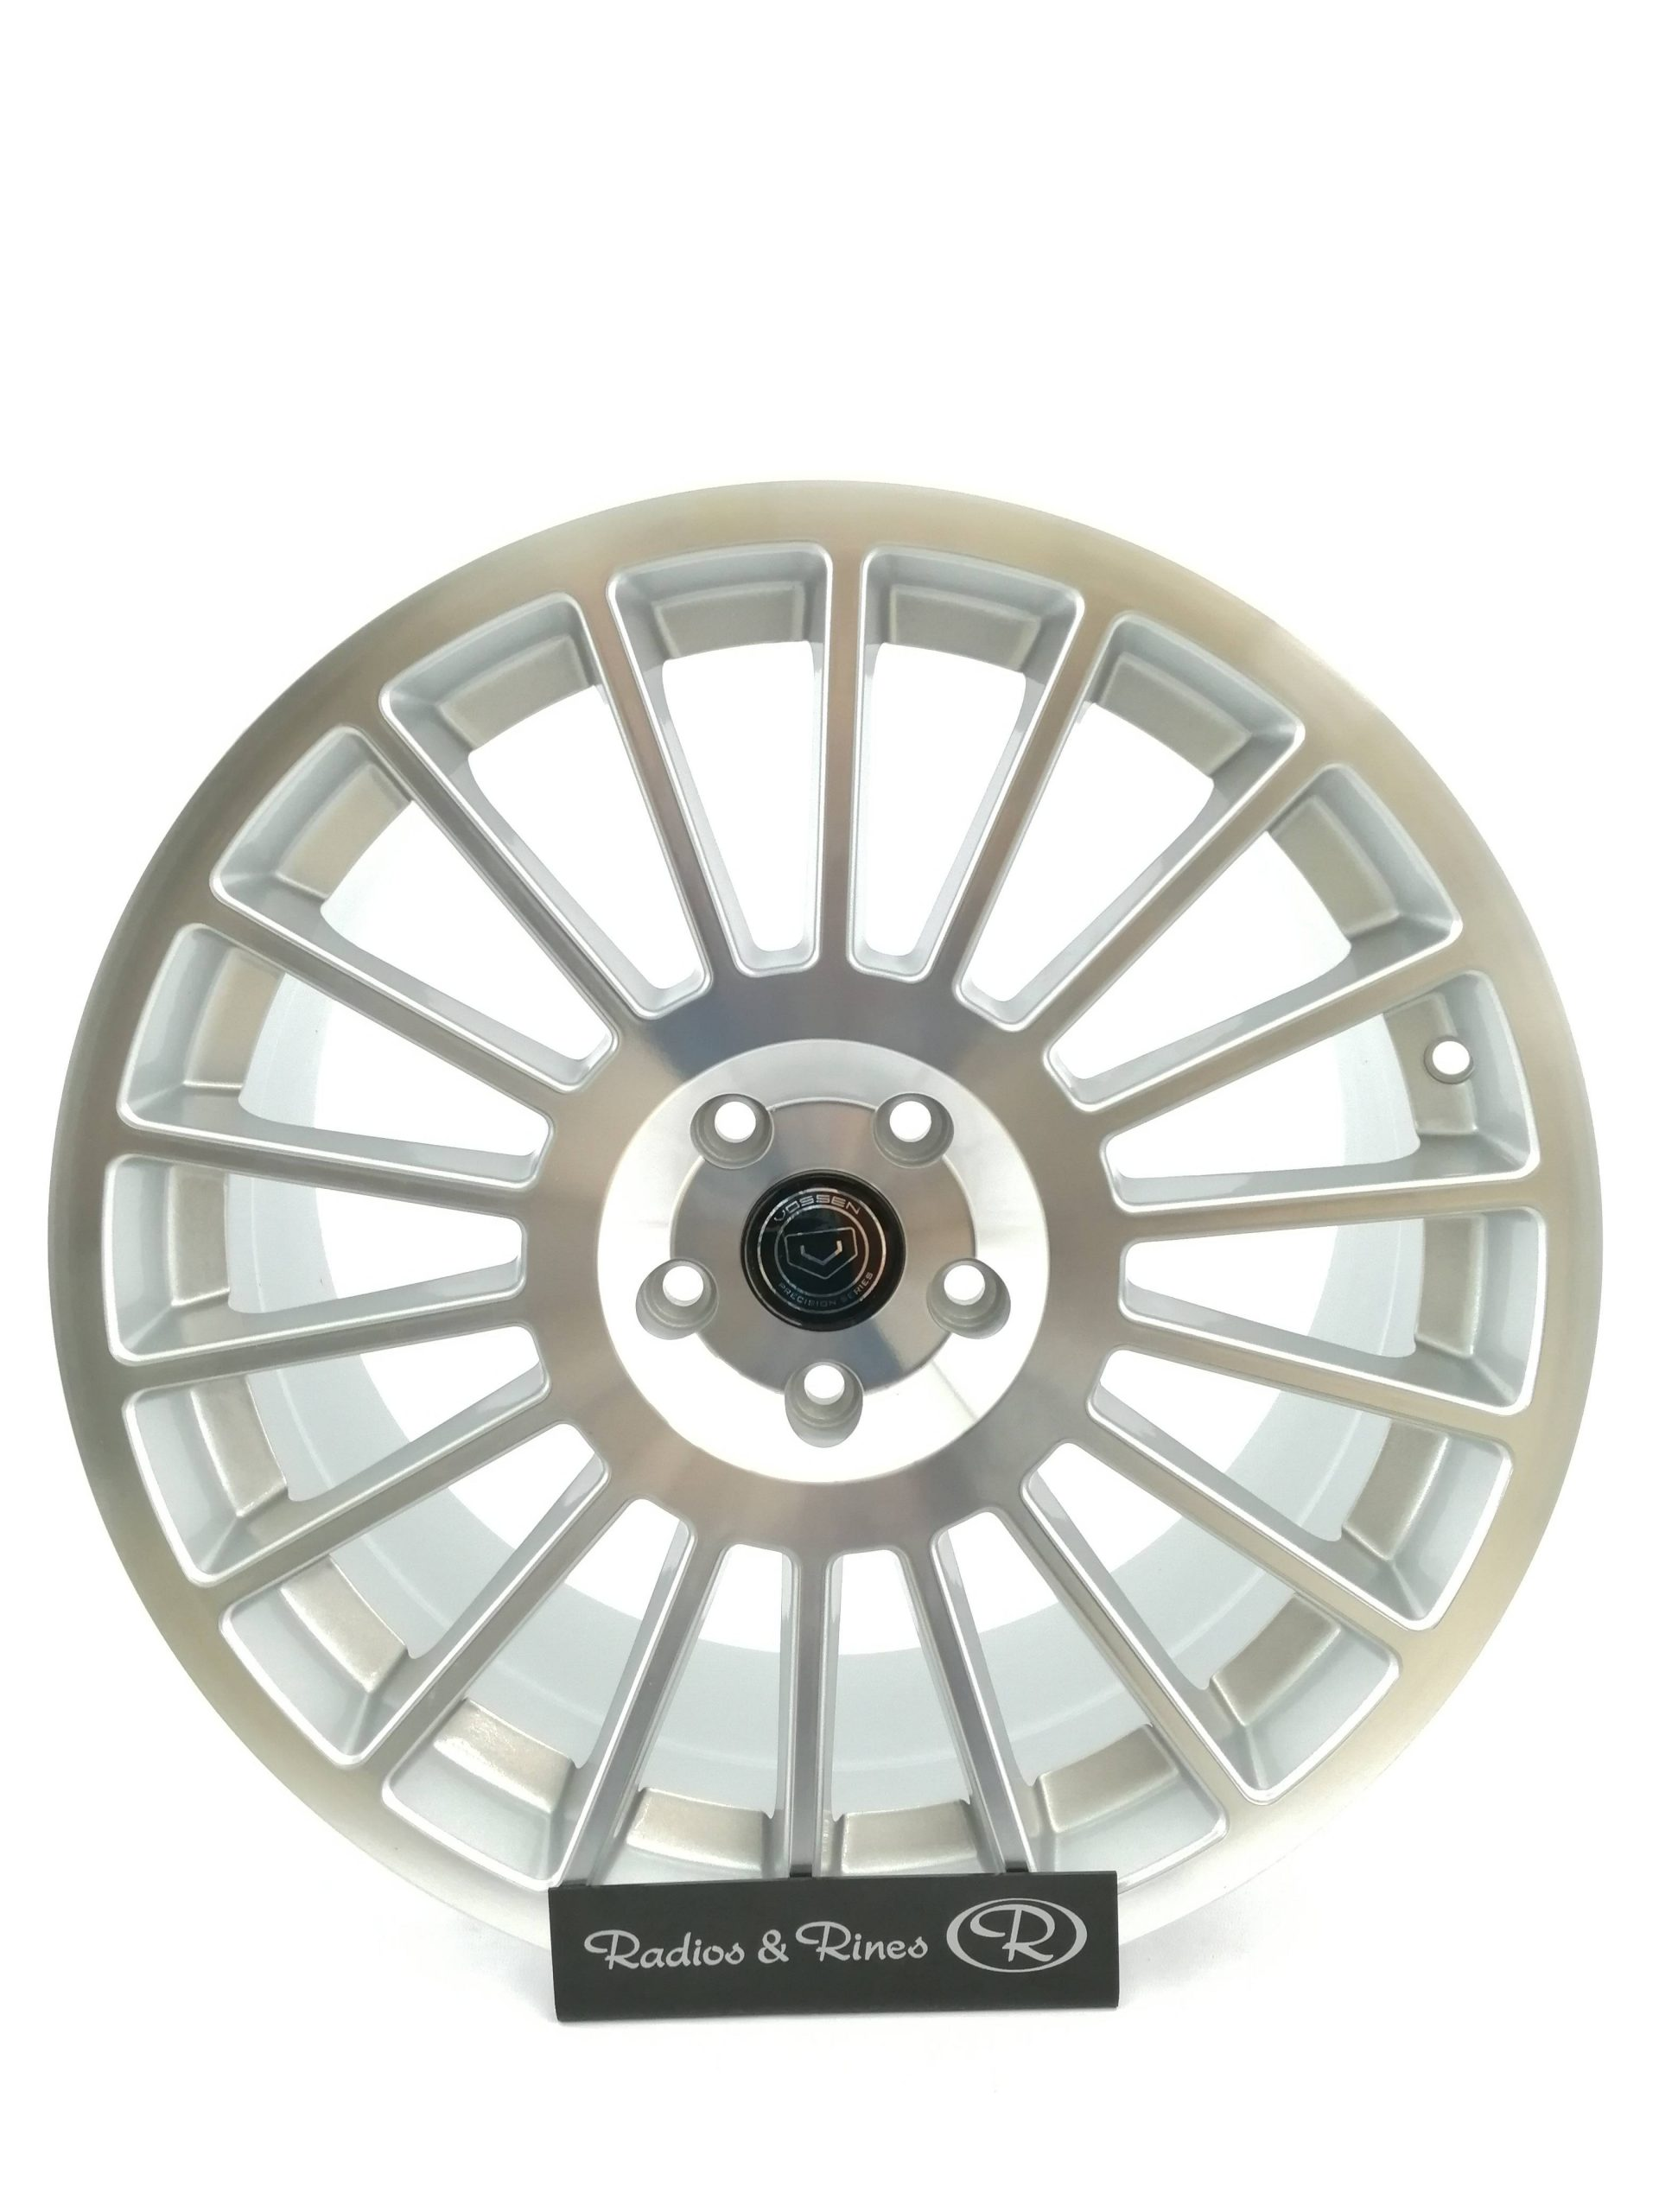 RIN RACER 193 R19X8.5 5H 112 PEAL SILVER MACHINED